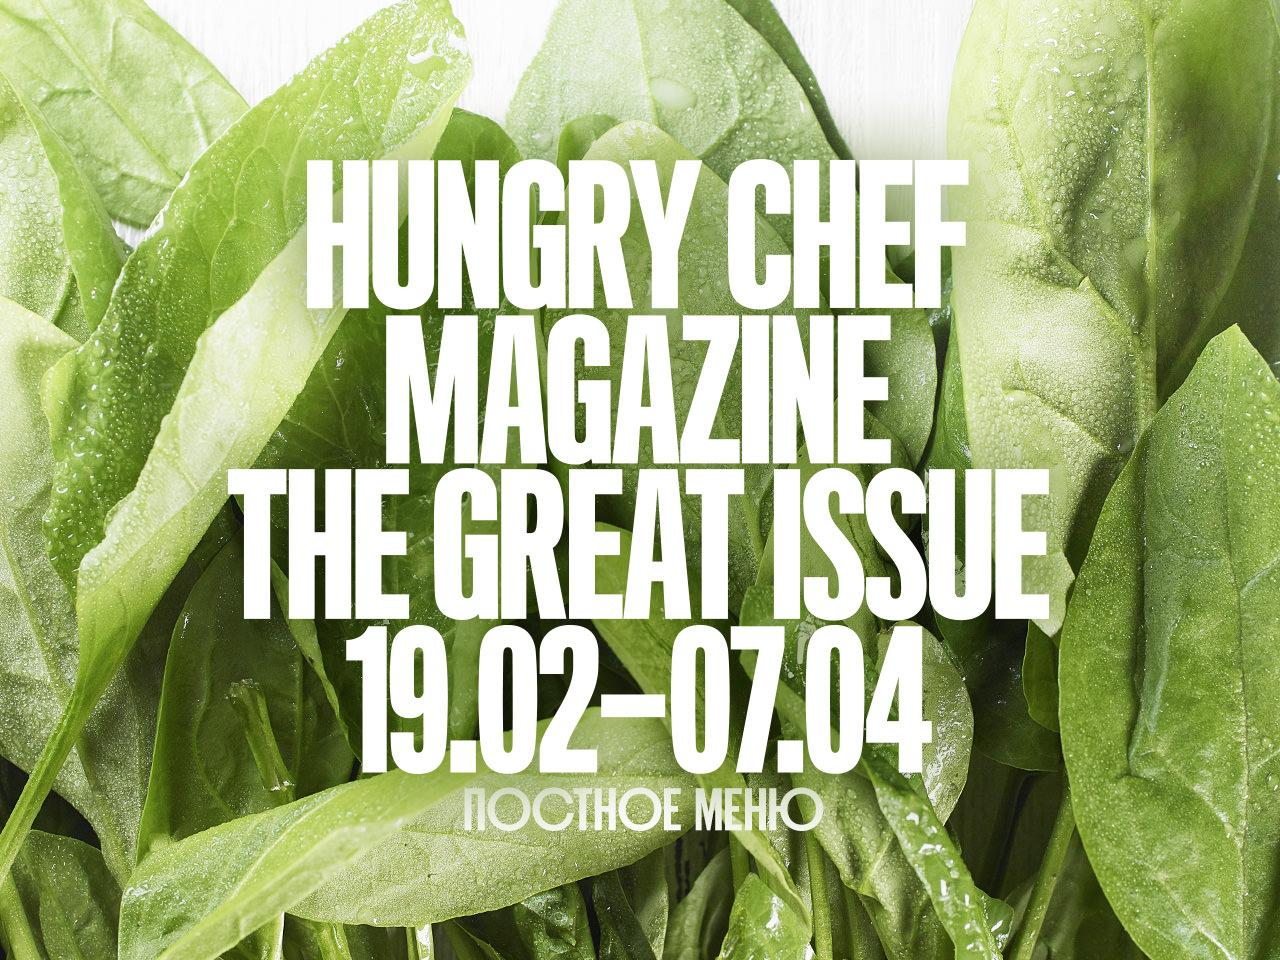 HUNGRY CHEF THE GREAT ISSUE